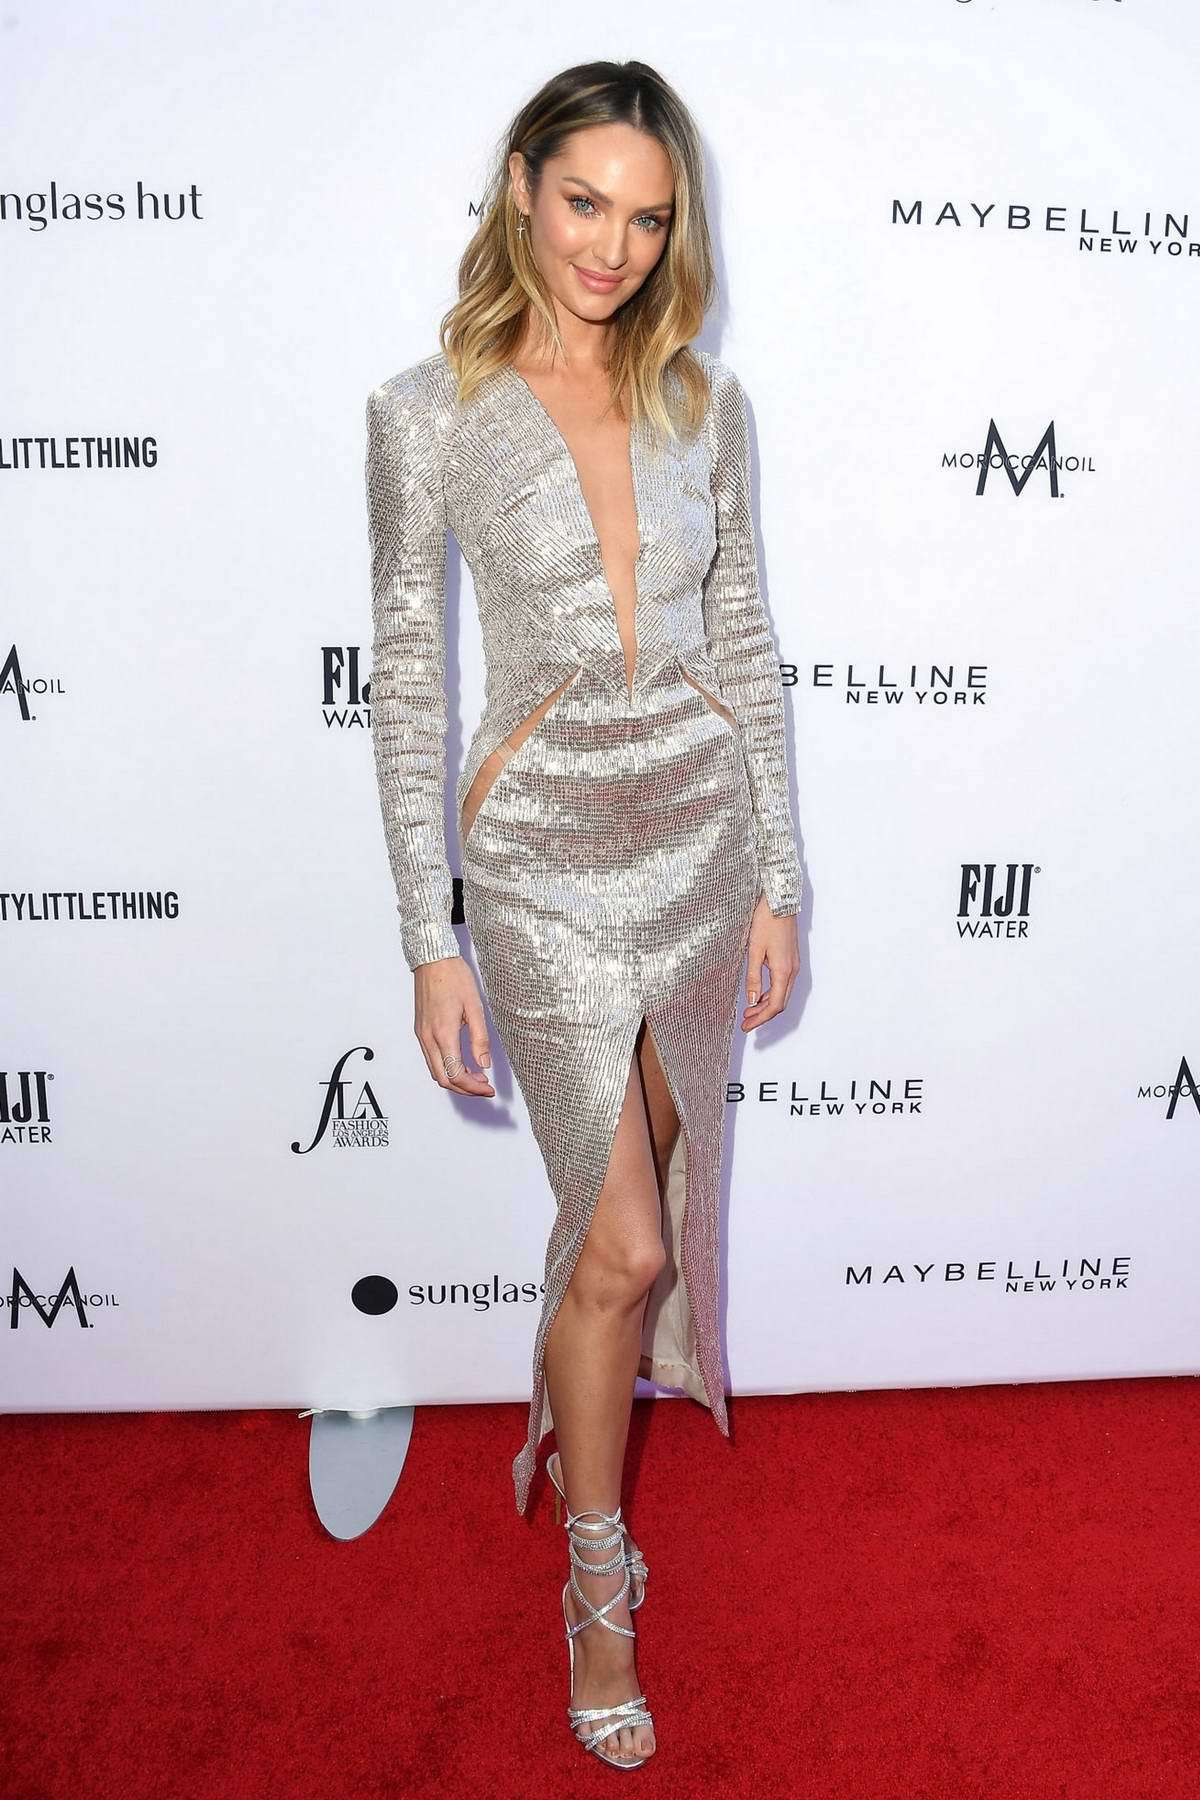 shoes silver sandals sandal heels candice swanepoel model red carpet dress plunge dress gown